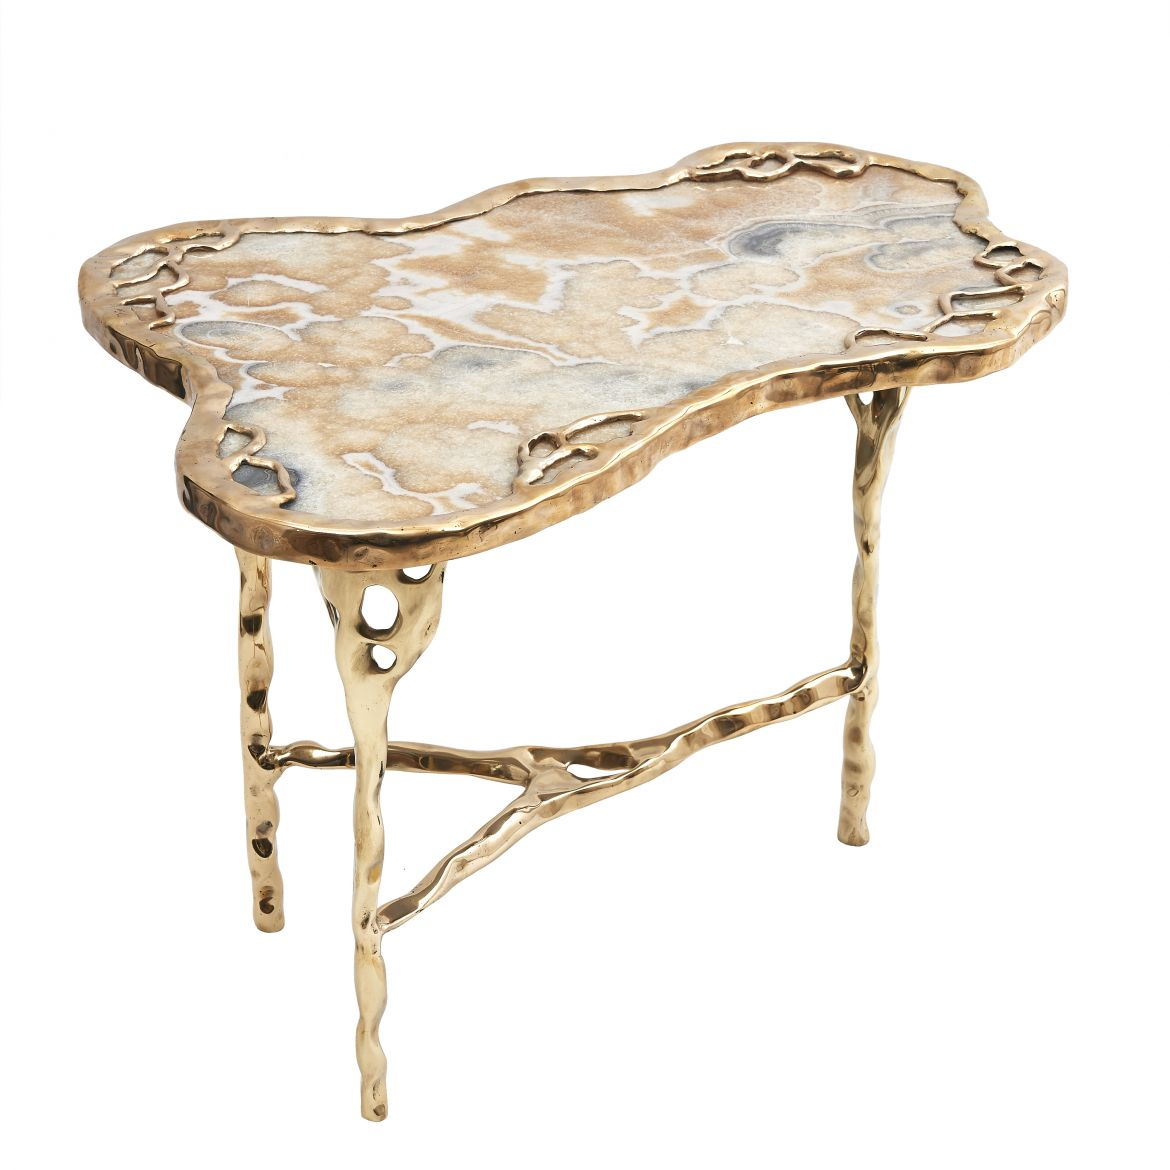 "Arriau ""Flack"" Biomorphic Table"